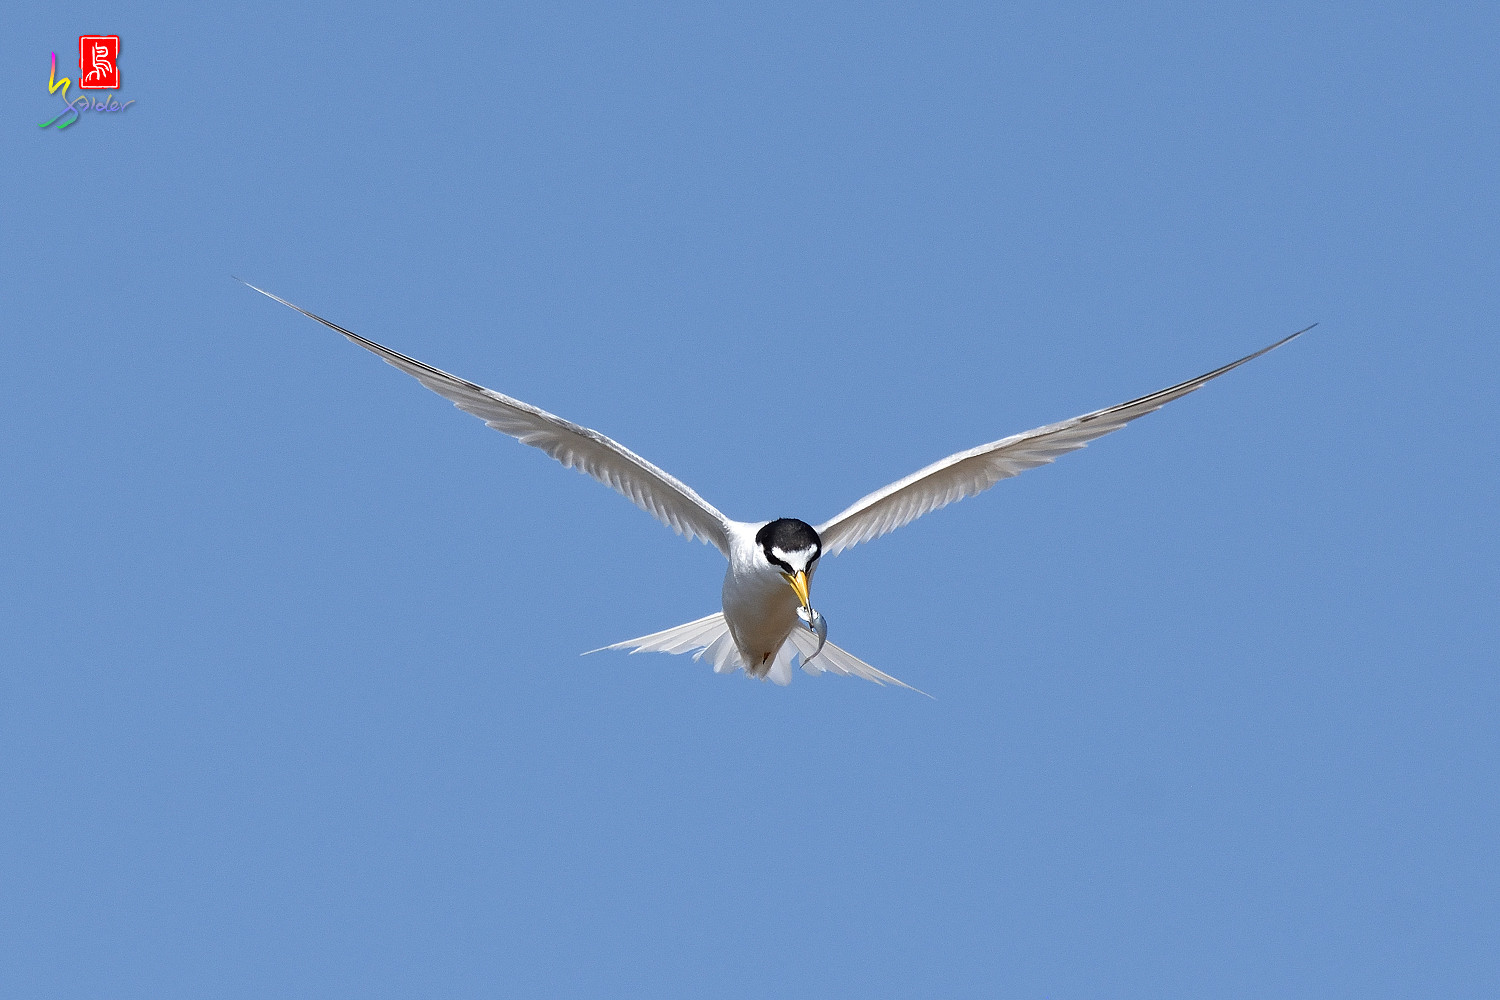 Little_Tern_7908